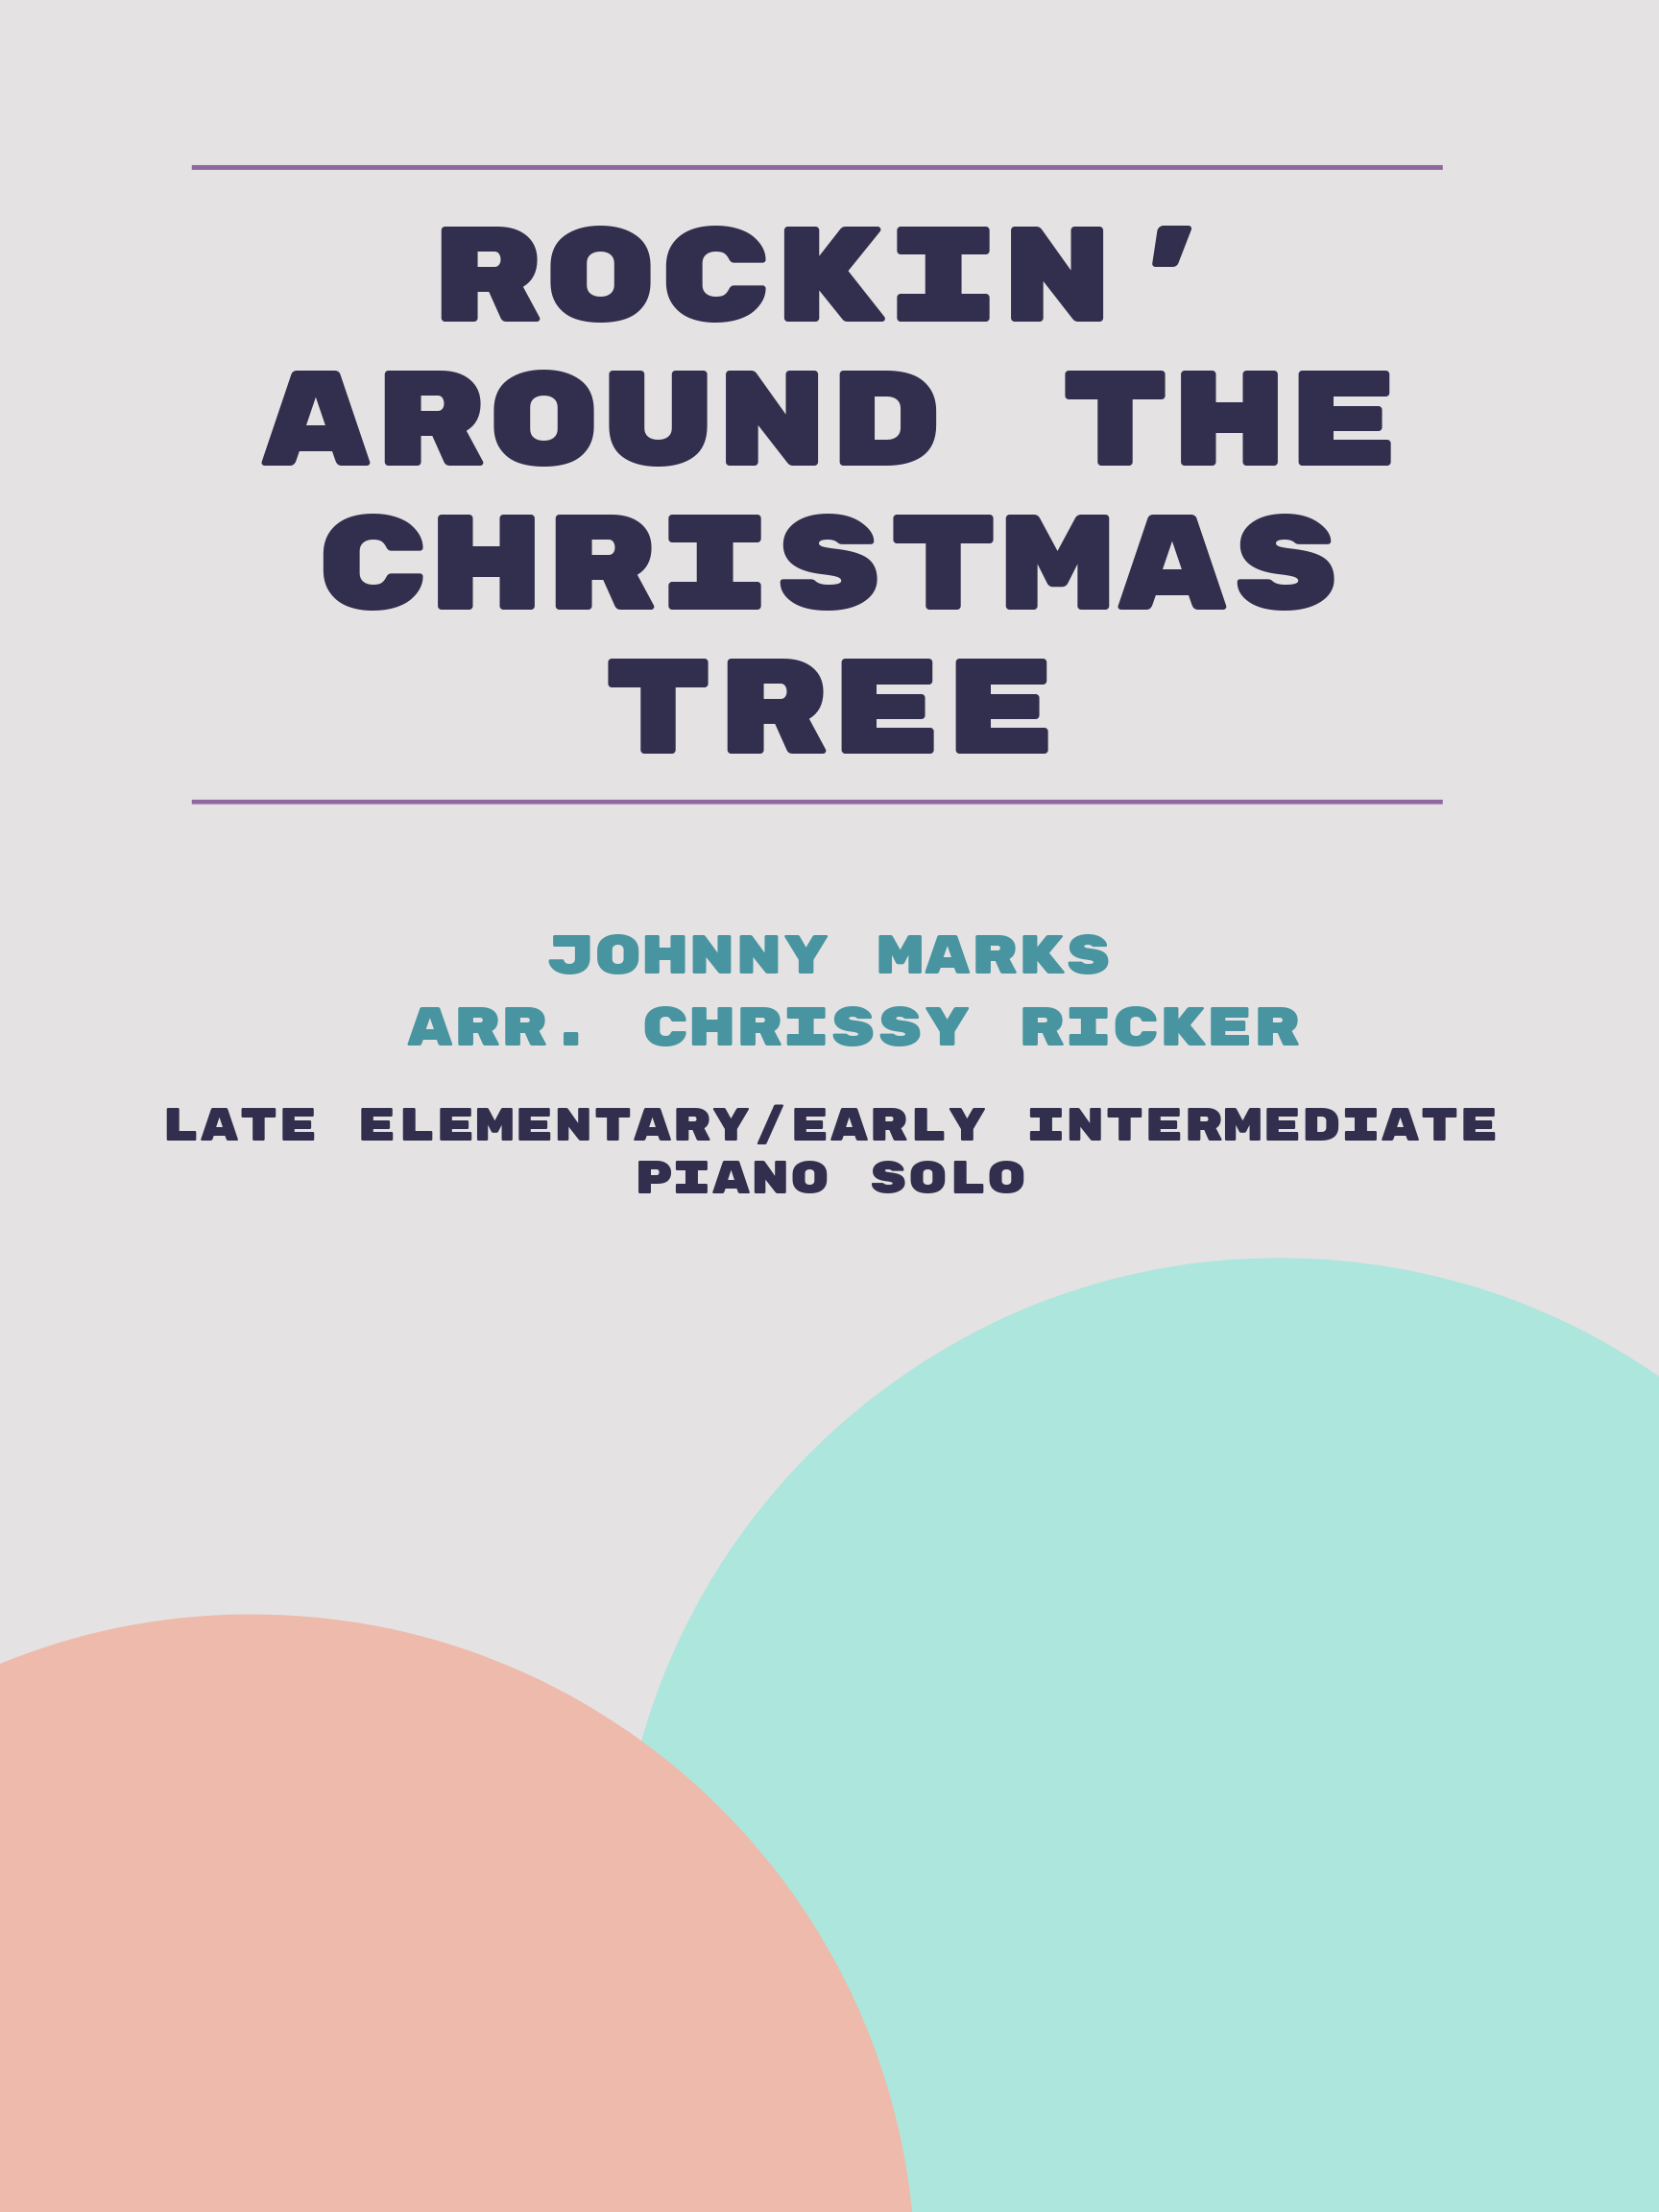 Rockin' Around the Christmas Tree by Johnny Marks